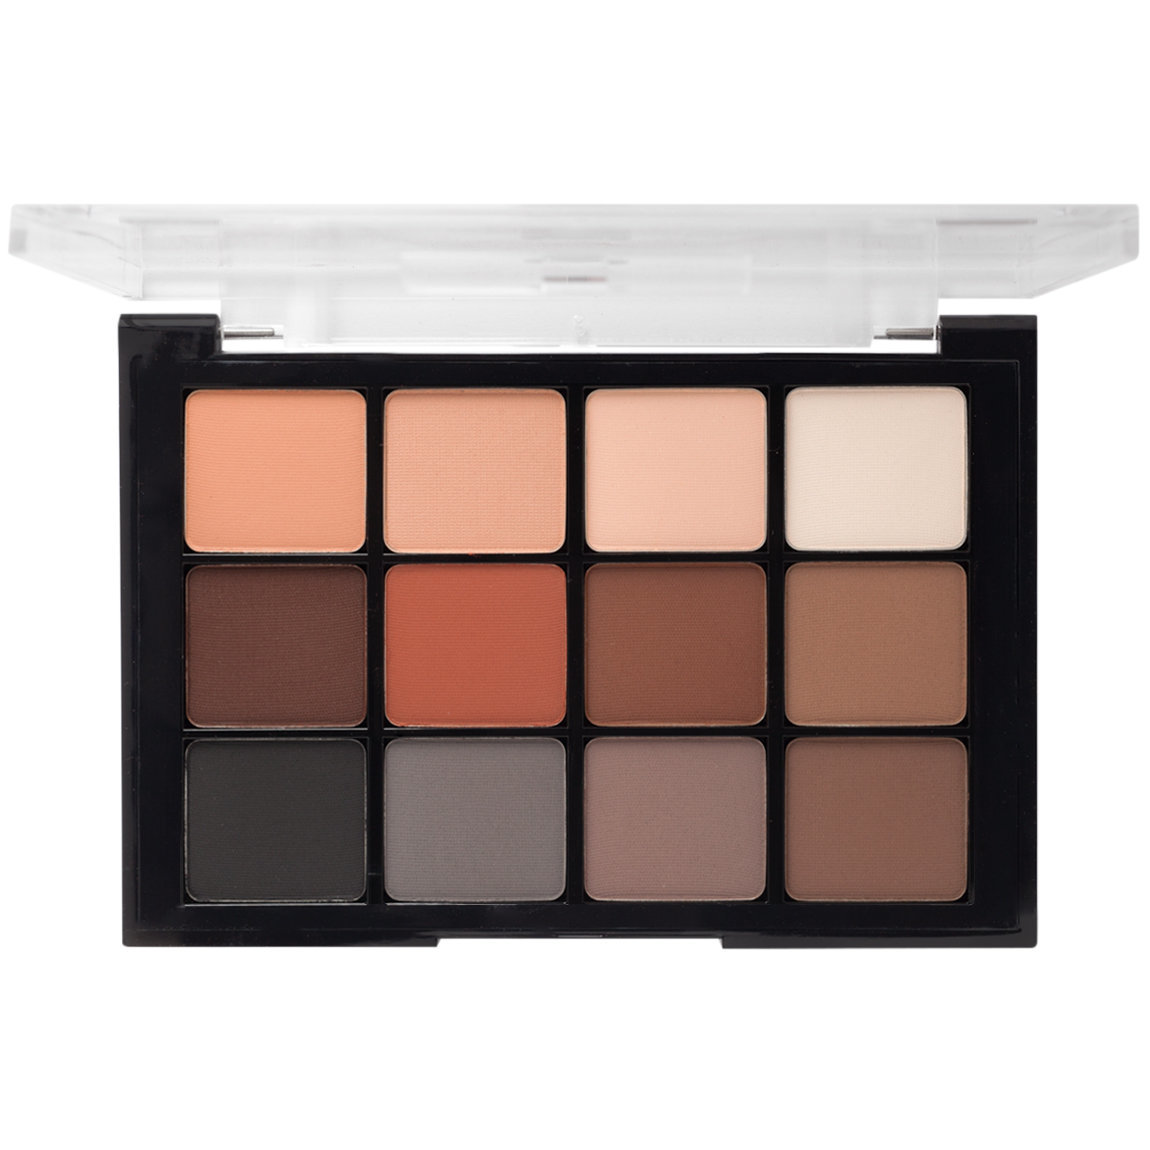 Viseart Eye Shadow Palette 1 Neutral Mattes product smear.